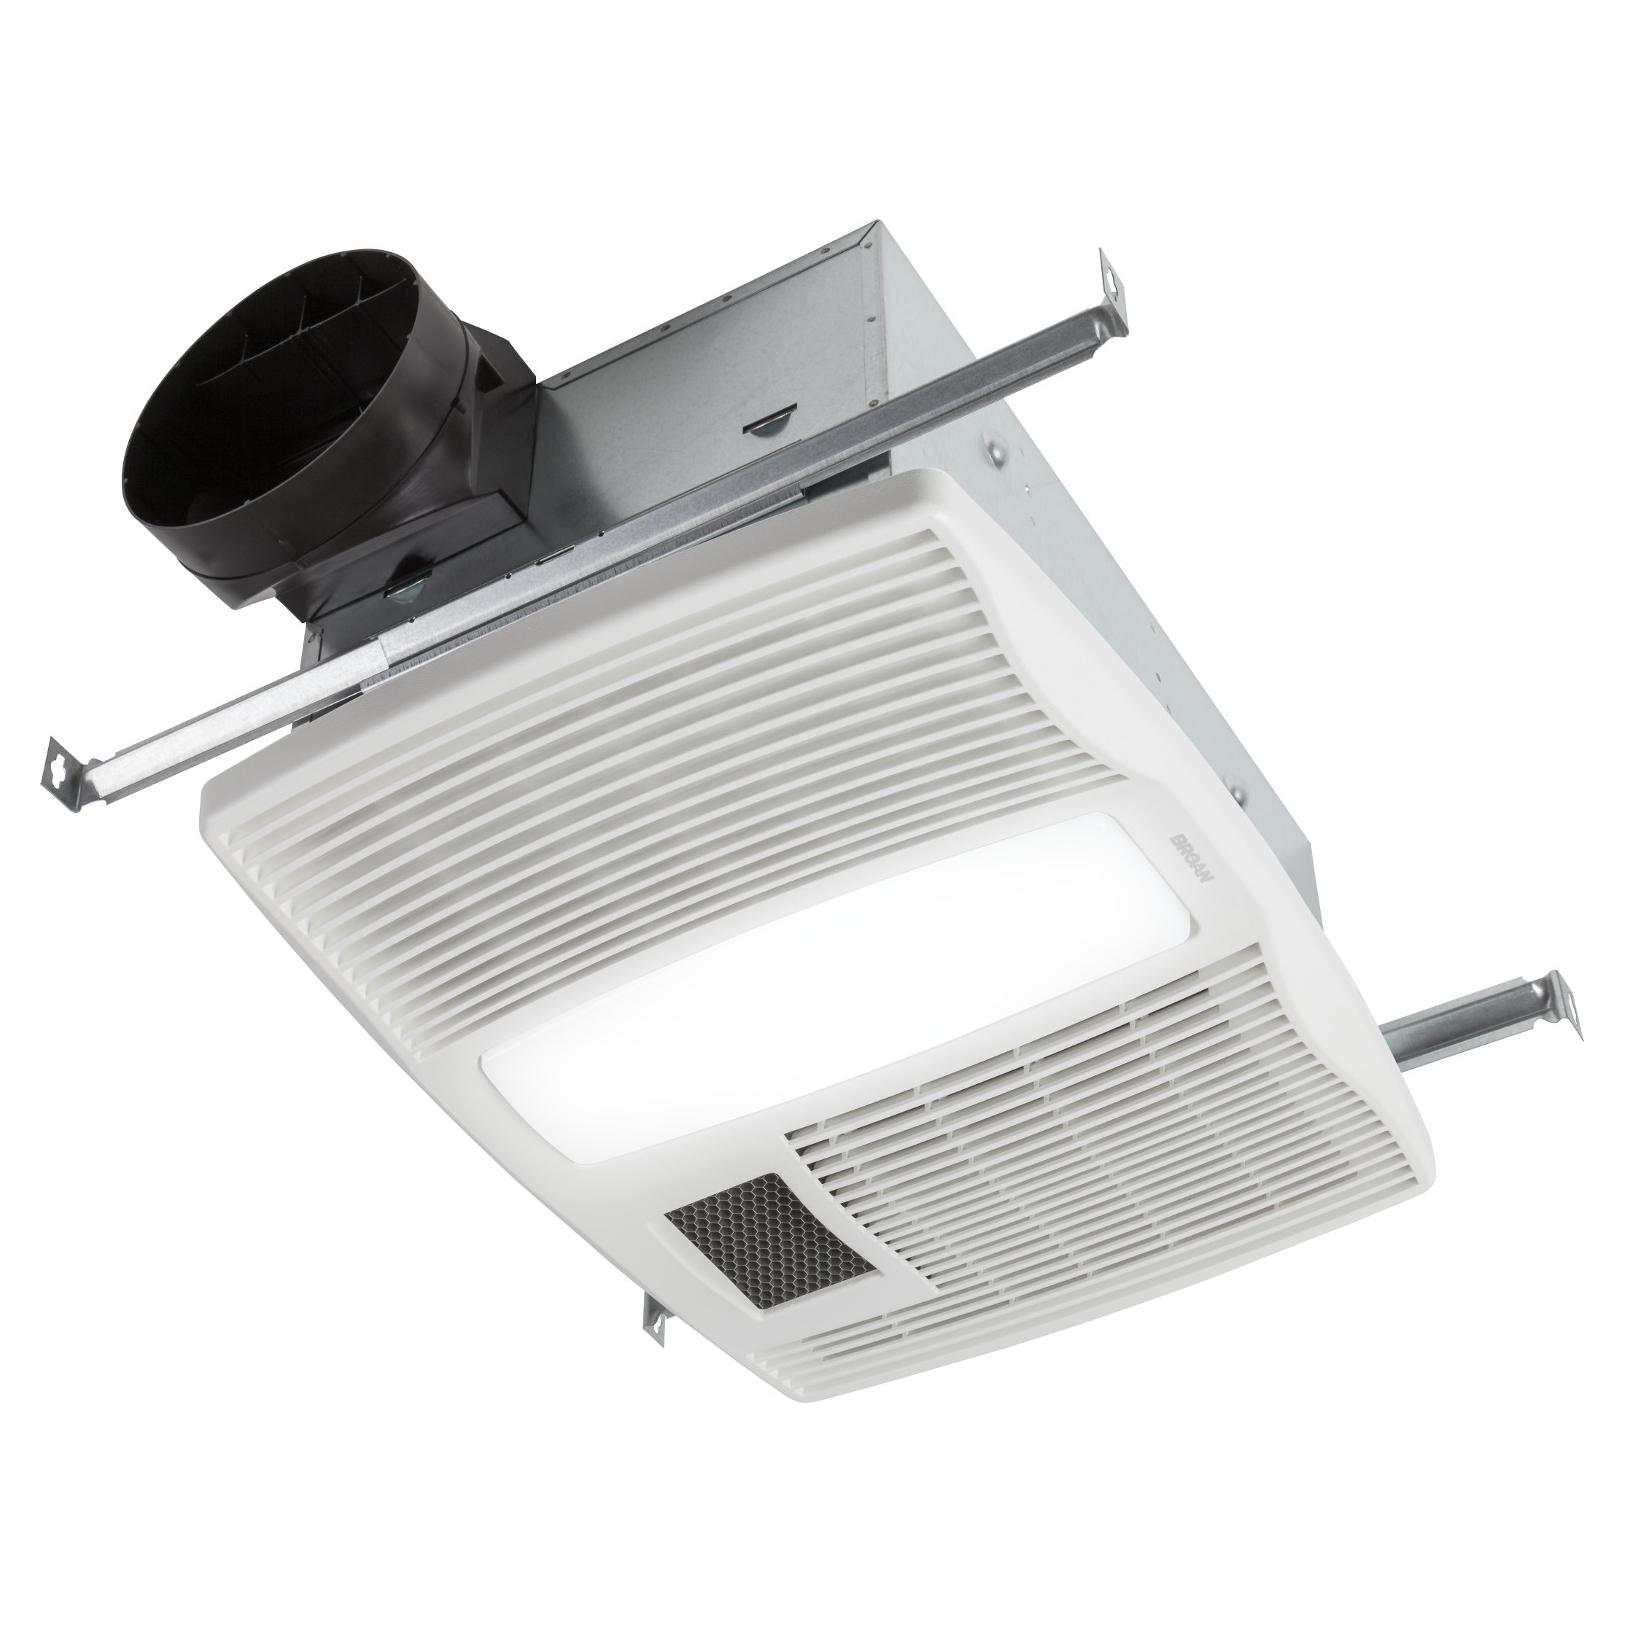 Broan-Nutone QTX110HL Very Quiet Ceiling Heater, Fan, and ...